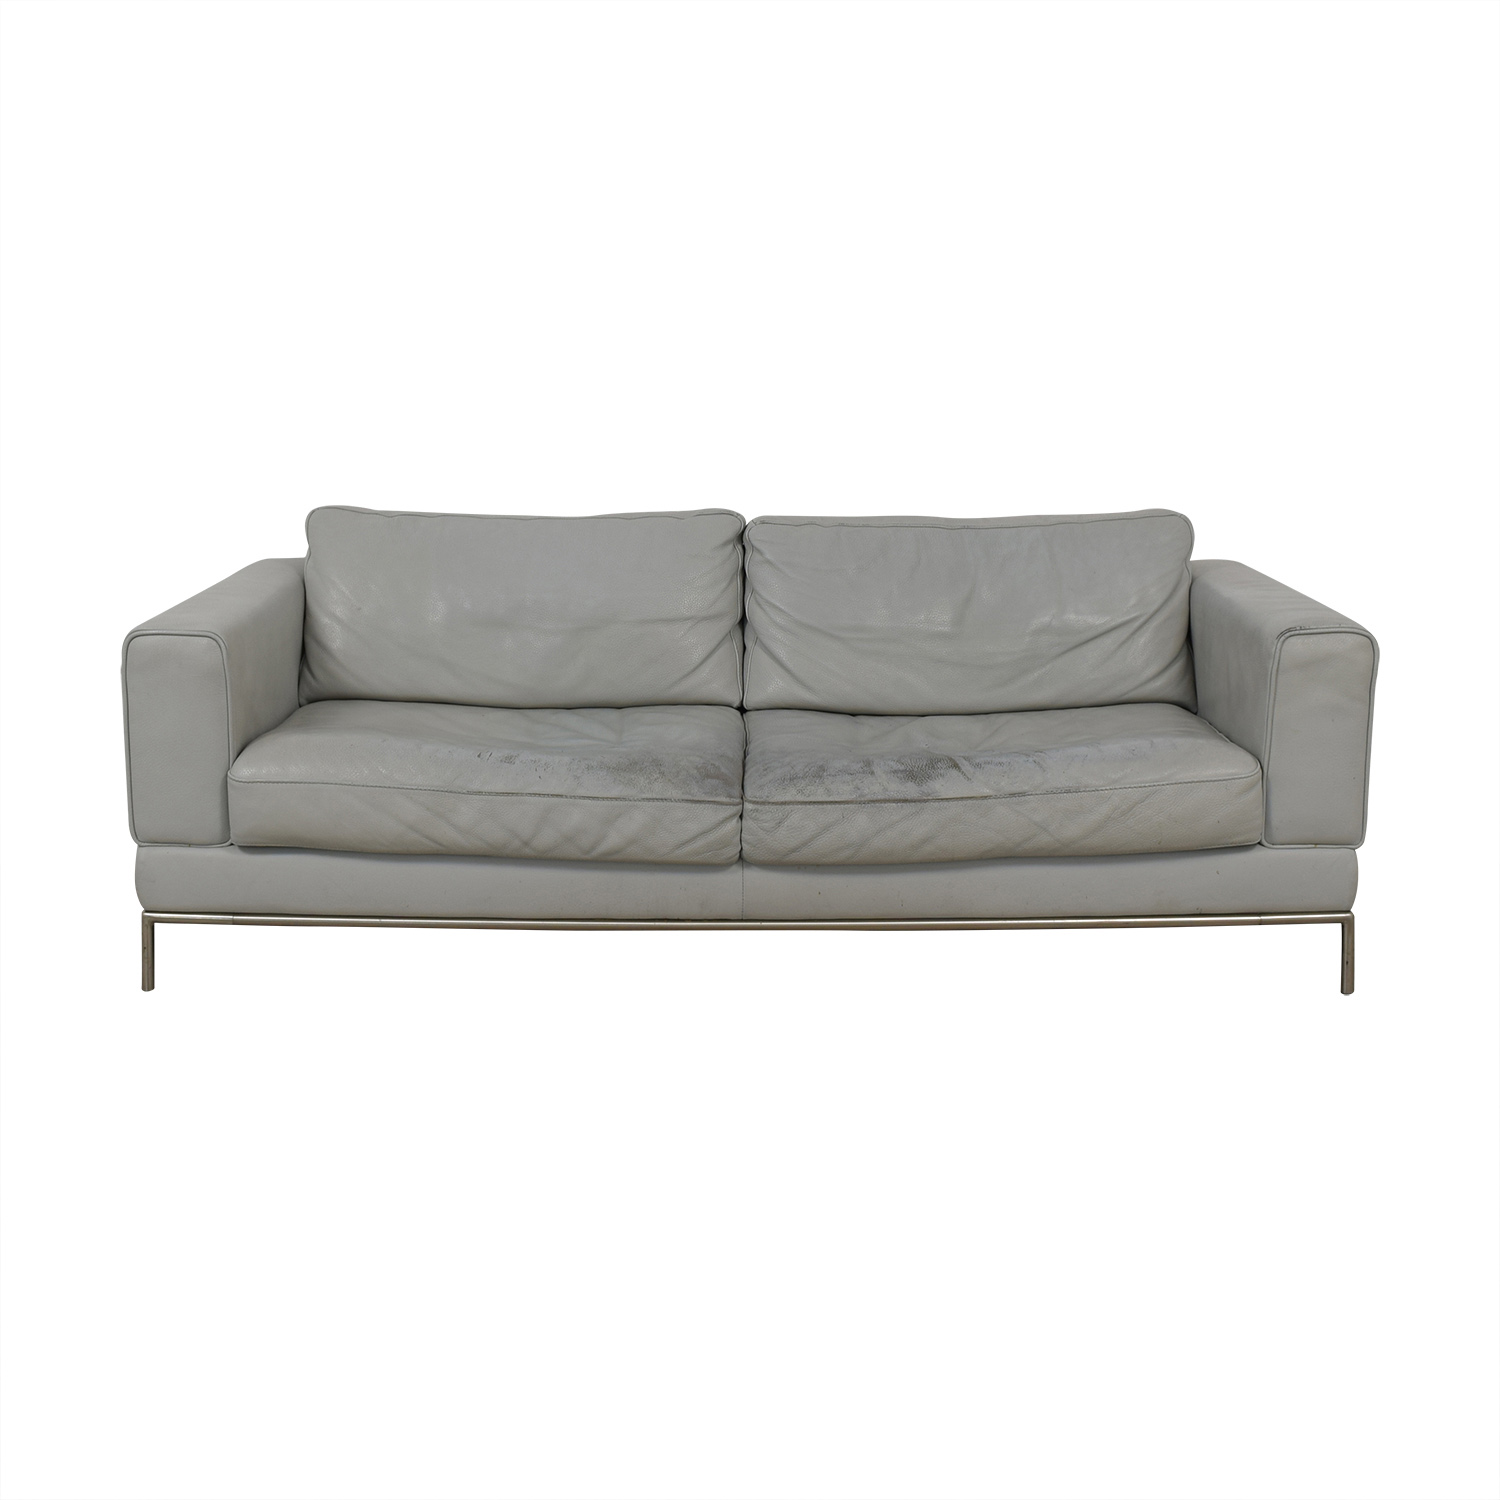 Ledersofa Ikea Säter 54 Off Ikea Ikea Sater Split Leather Sofa Sofas